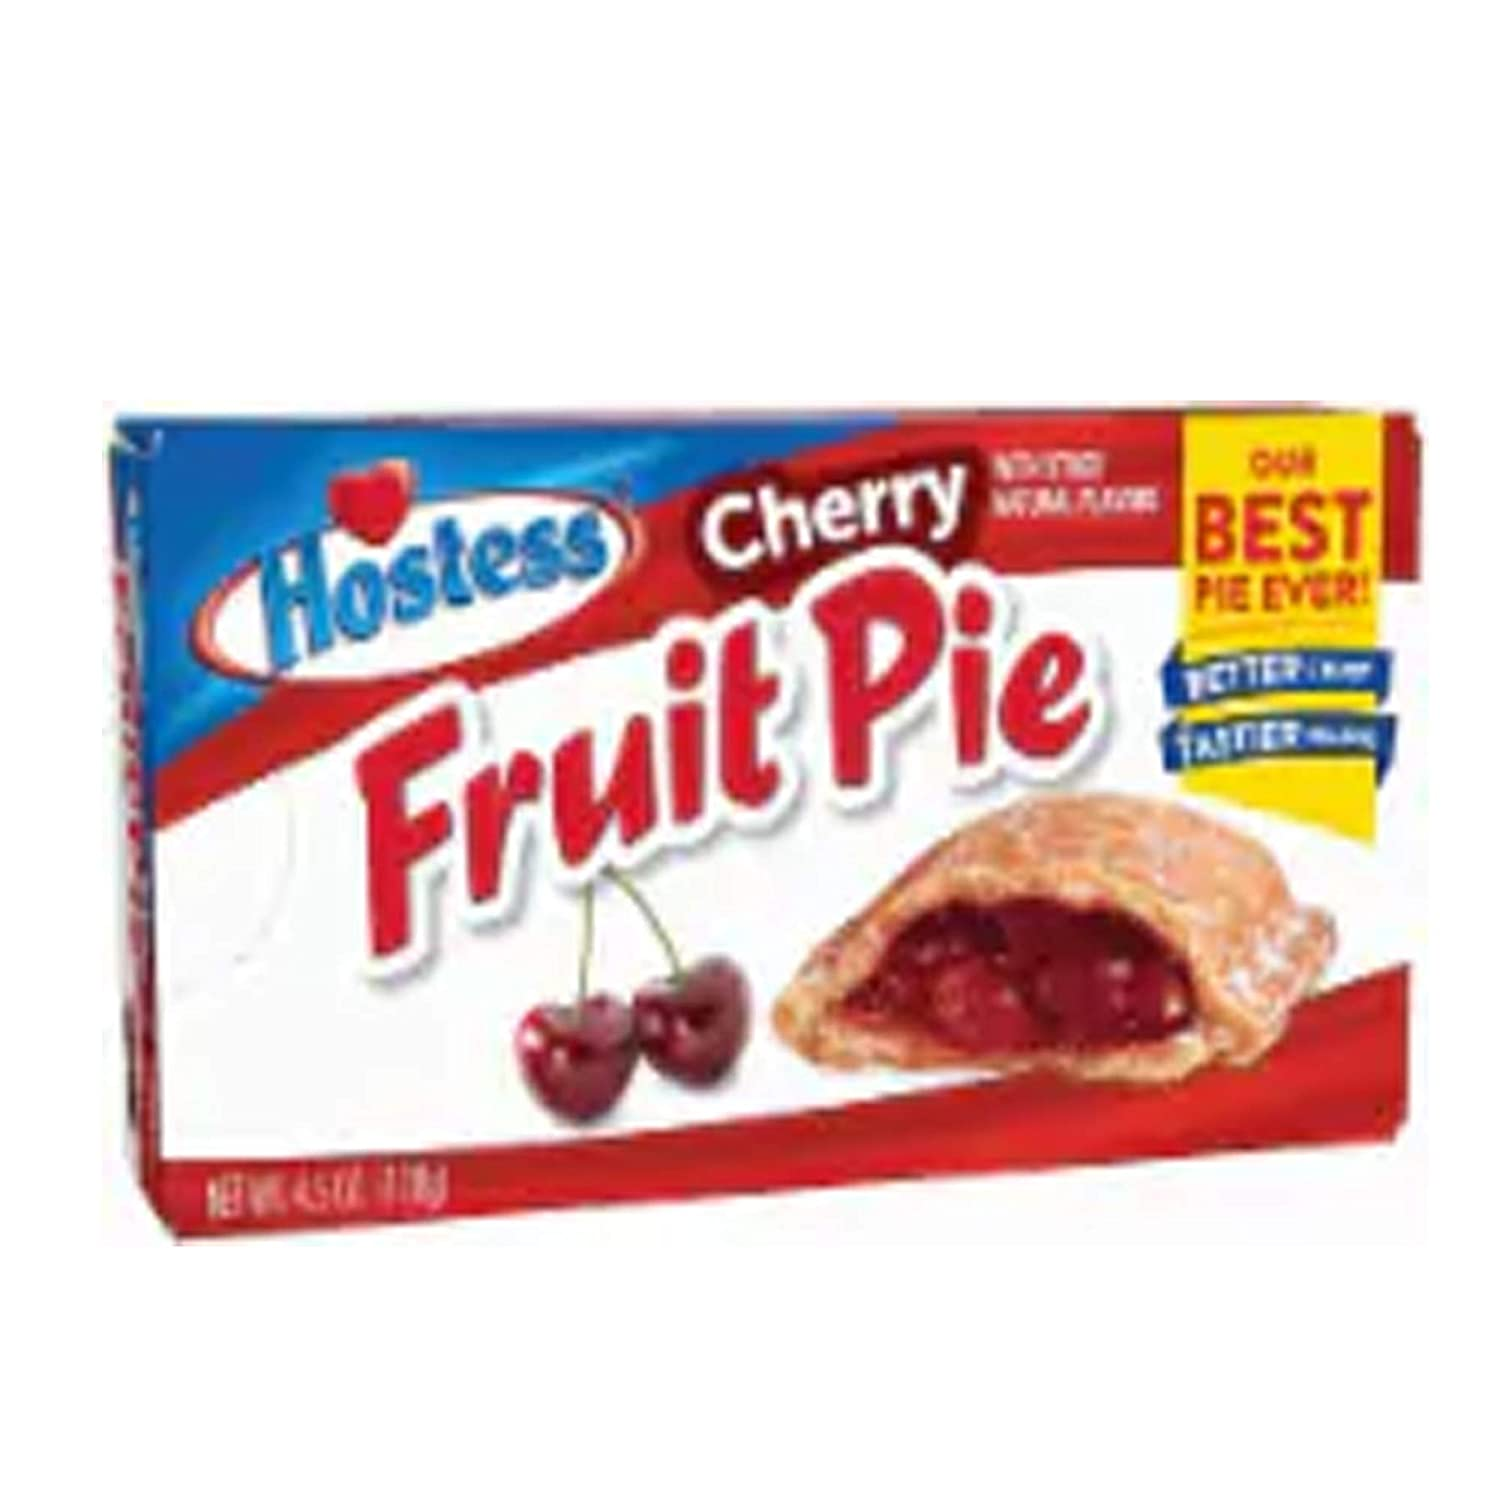 Hostess Fruit Pies Cherry with other natural flavors 4 oz (pack of 8 Pies)